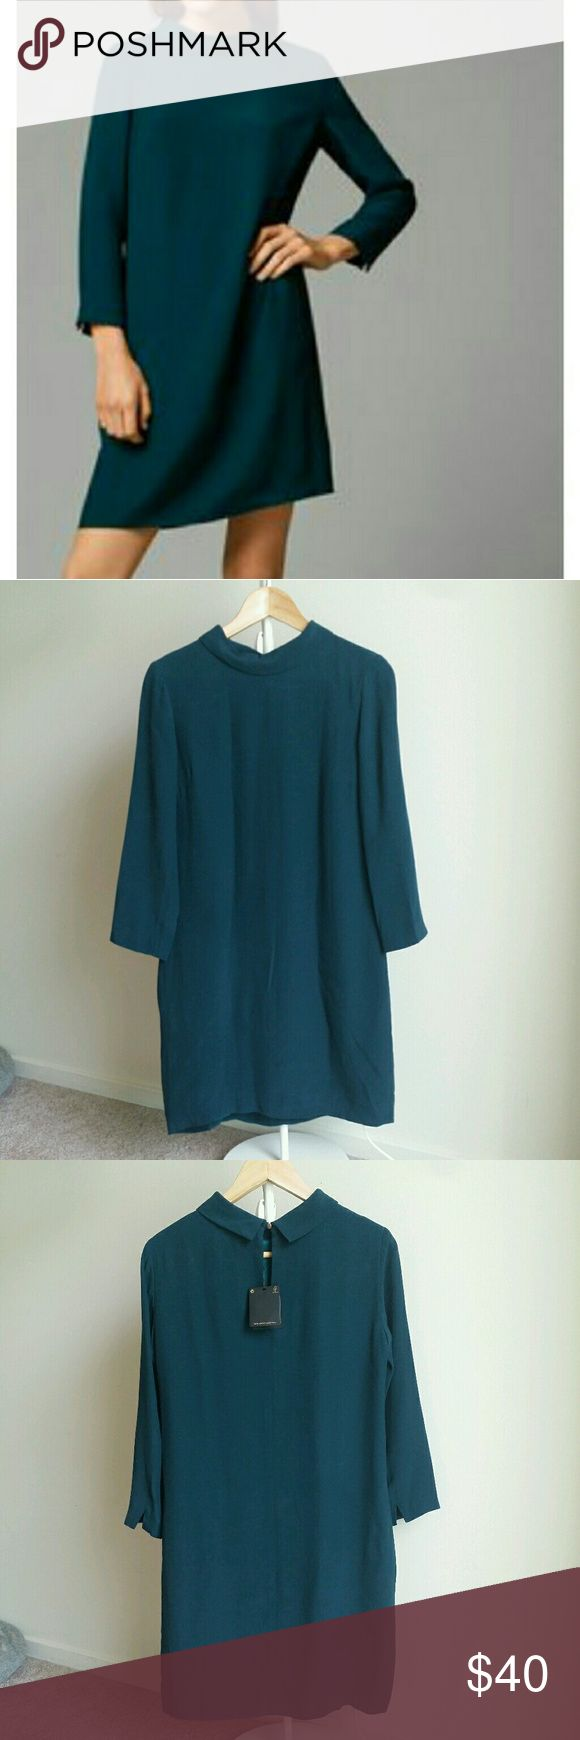 NWT $150 Massimo dutti green shift dress Beautiful teal green color. Shift dress. Size 4. Lined. 3/4 sleeves. Massimo Dutti Dresses Long Sleeve